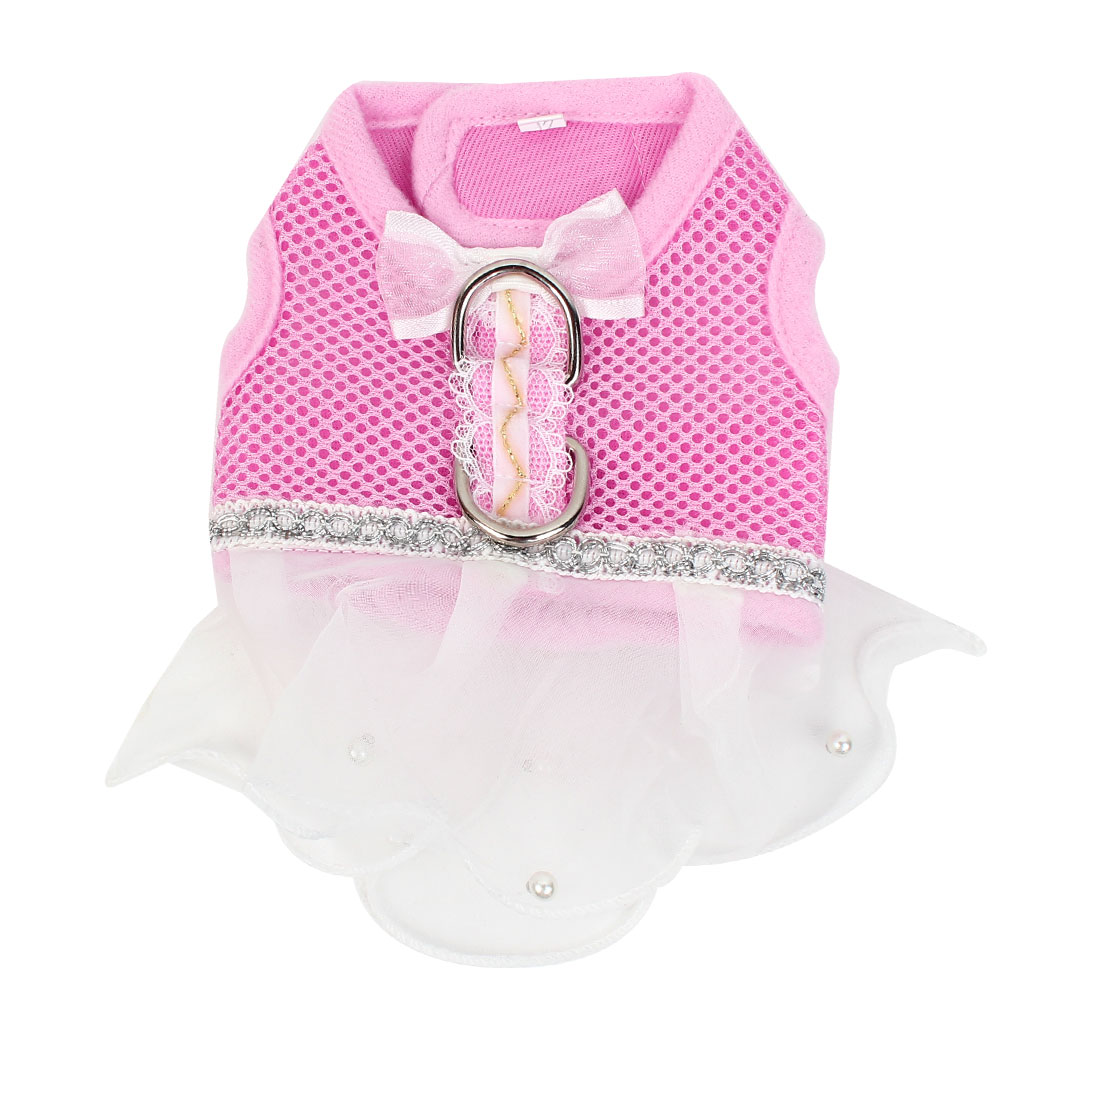 Pet Dog Puppy Detachable Closure Netty Design Dress Apparel Skirt Pink White Size XXS